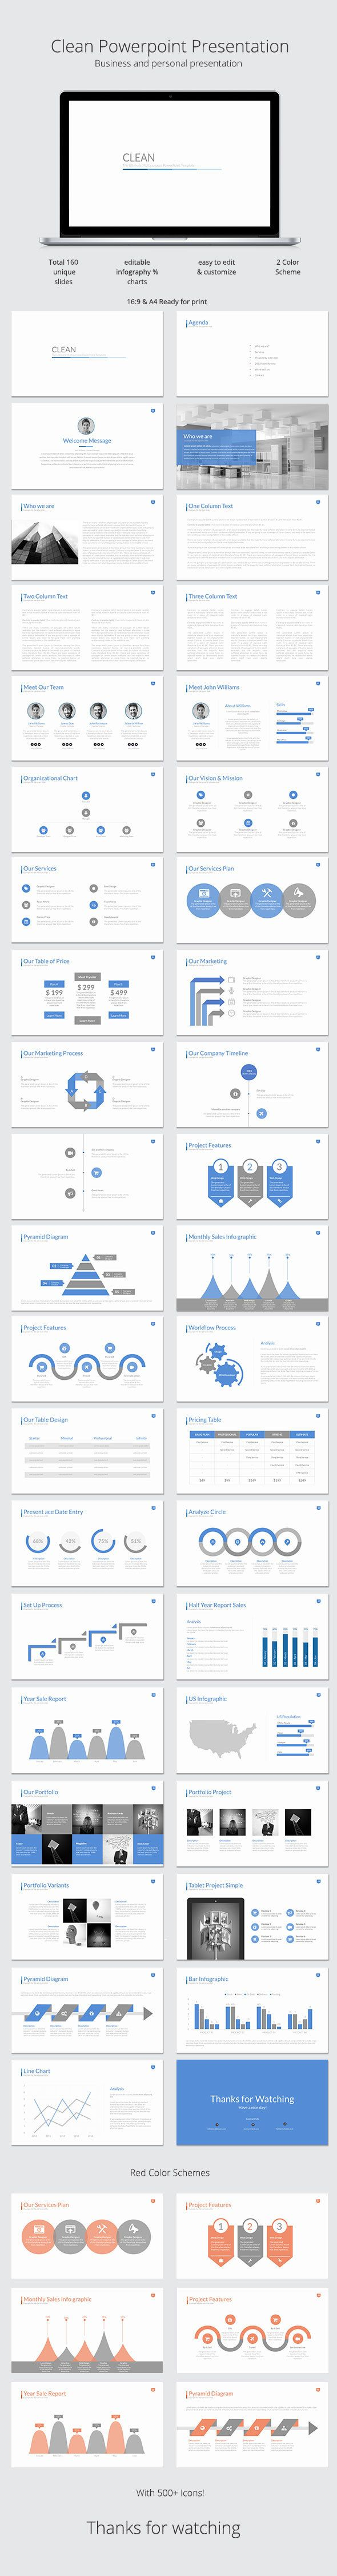 Usdgus  Gorgeous  Ideas About Powerpoint Presentations On Pinterest With Goodlooking Clean Powerpoint Template With Alluring Emergency Severity Index Powerpoint Also Powerpoint Presentation Examples For Students In Addition Powerpoint Movement And Elements Of Drama Powerpoint As Well As Powerpoint Tips  Additionally How To Make A Great Powerpoint Presentation From Pinterestcom With Usdgus  Goodlooking  Ideas About Powerpoint Presentations On Pinterest With Alluring Clean Powerpoint Template And Gorgeous Emergency Severity Index Powerpoint Also Powerpoint Presentation Examples For Students In Addition Powerpoint Movement From Pinterestcom